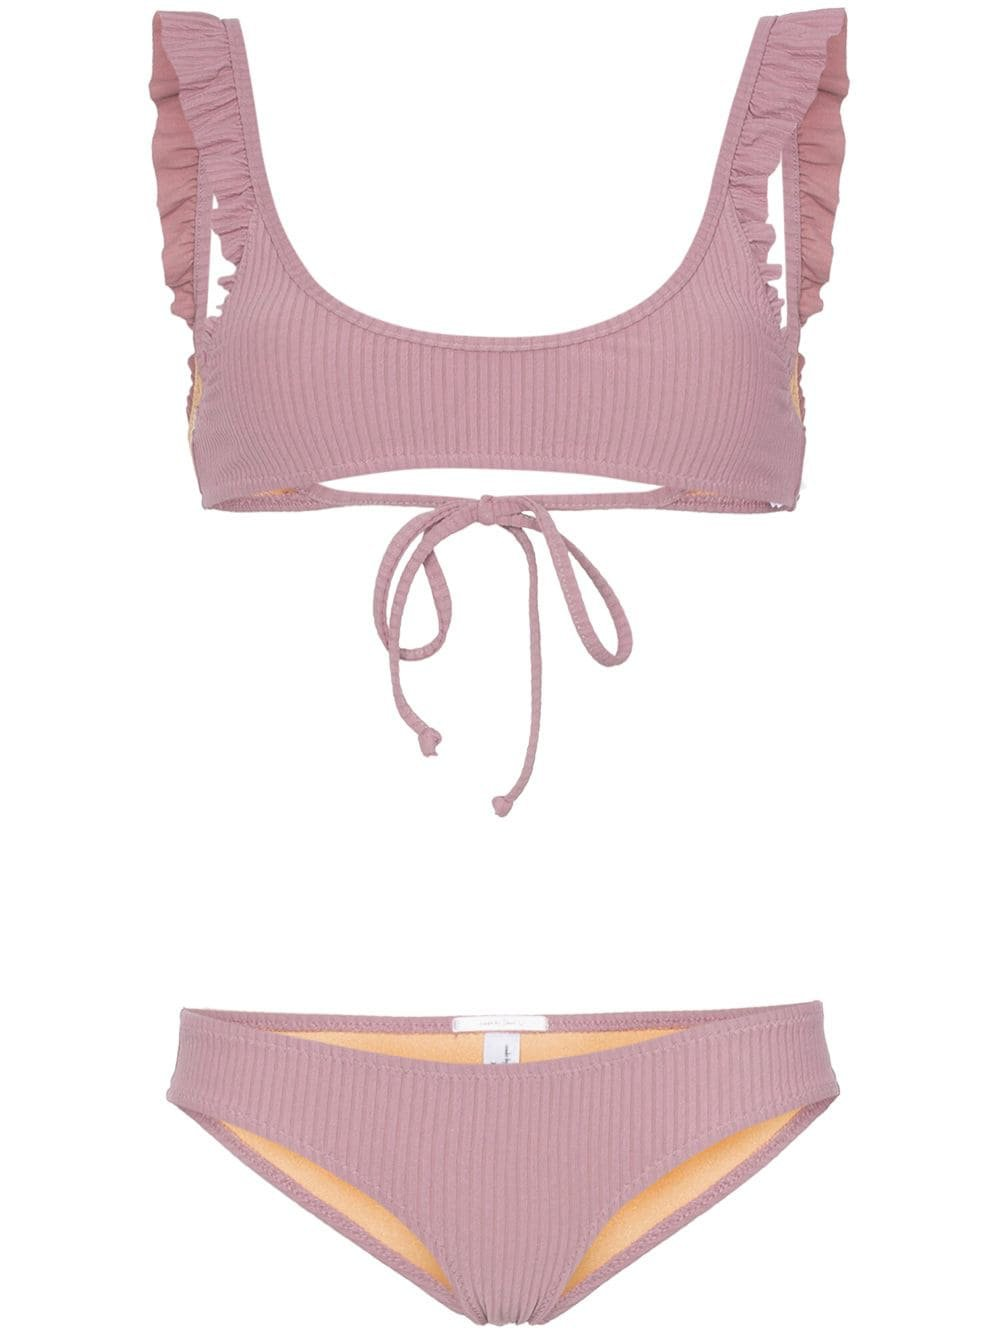 Made By Dawn petal frill detail bikini $300 - Buy Online - Mobile Friendly, Fast Delivery, Price